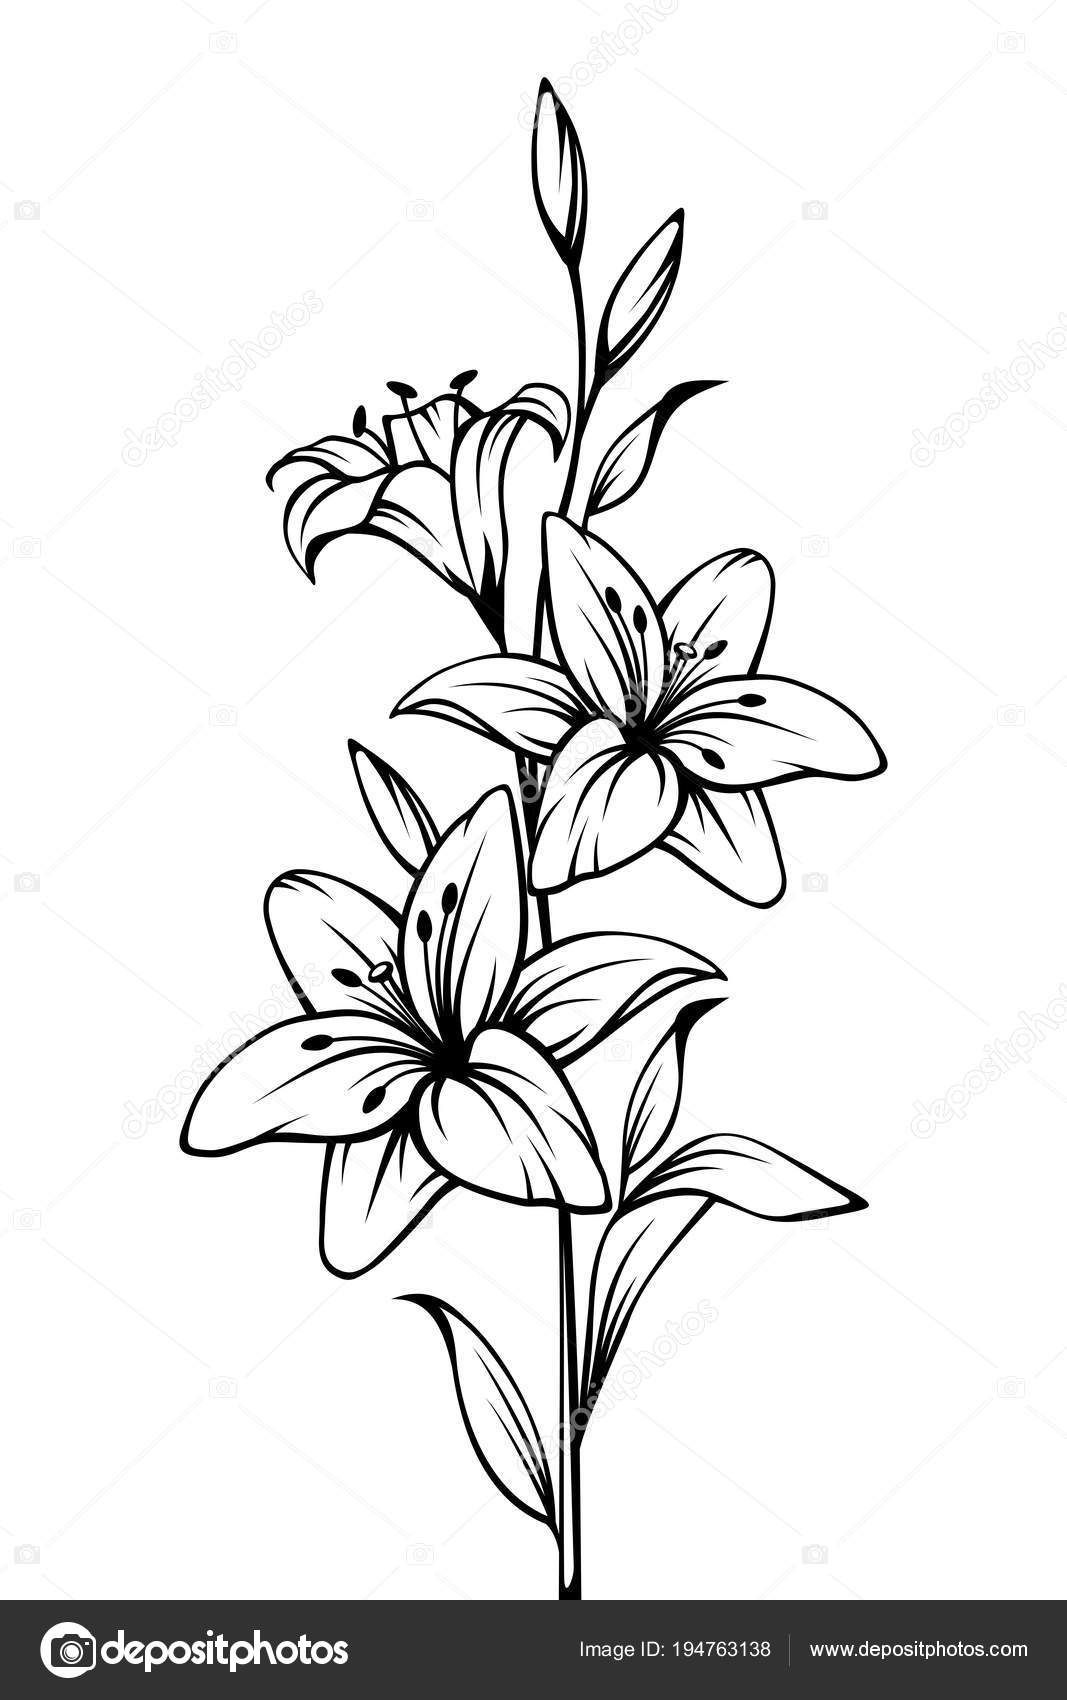 Vector Black White Contour Drawing Lily Pencil Drawings Of